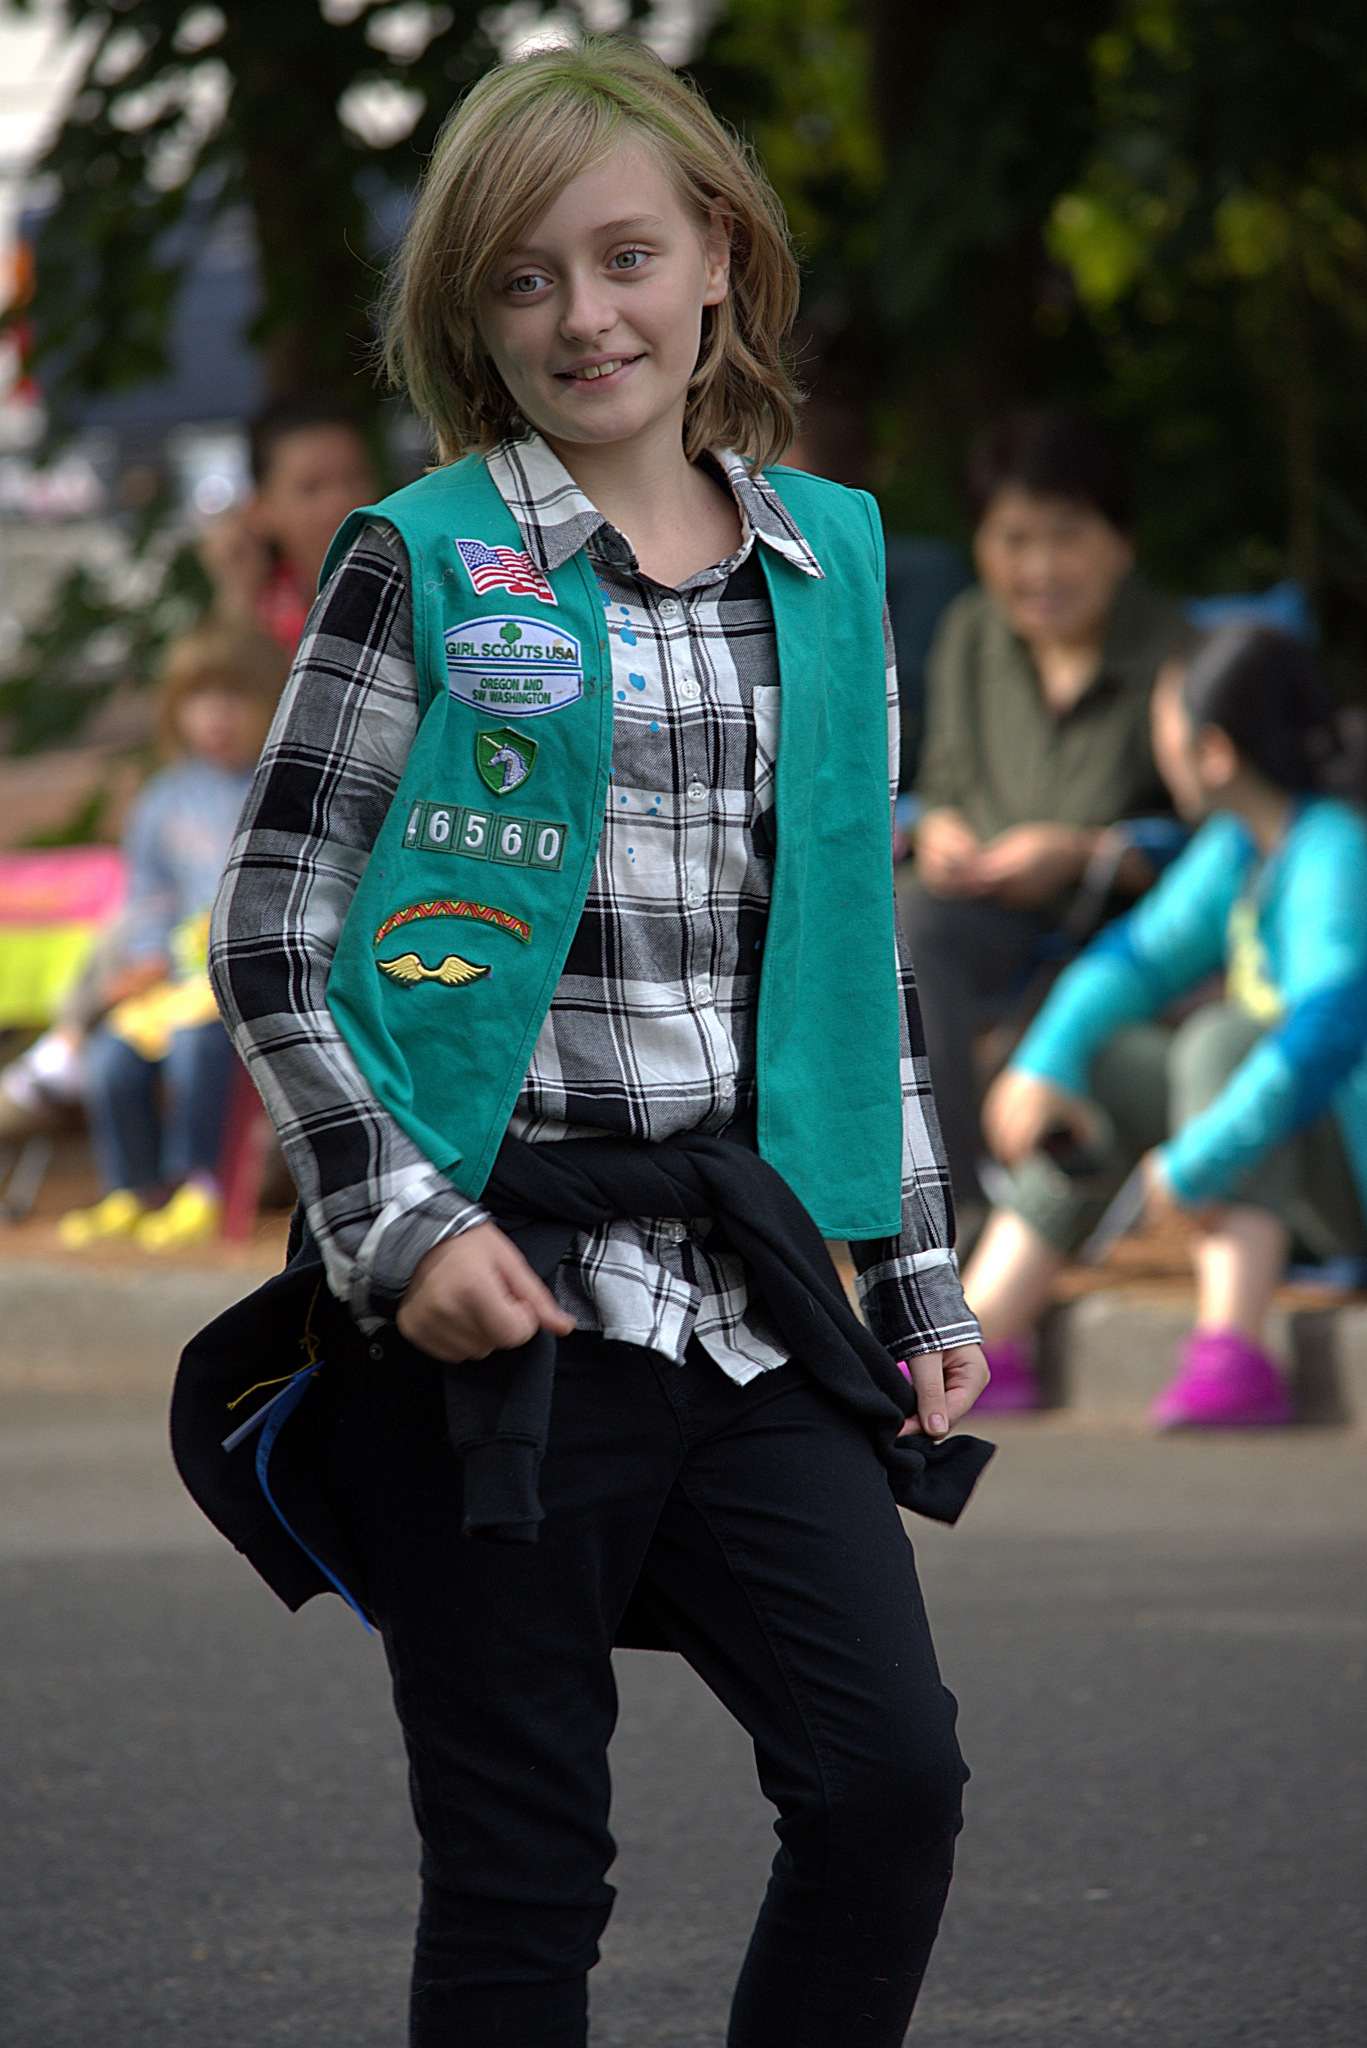 Girl Scout On Parade by pscottwong